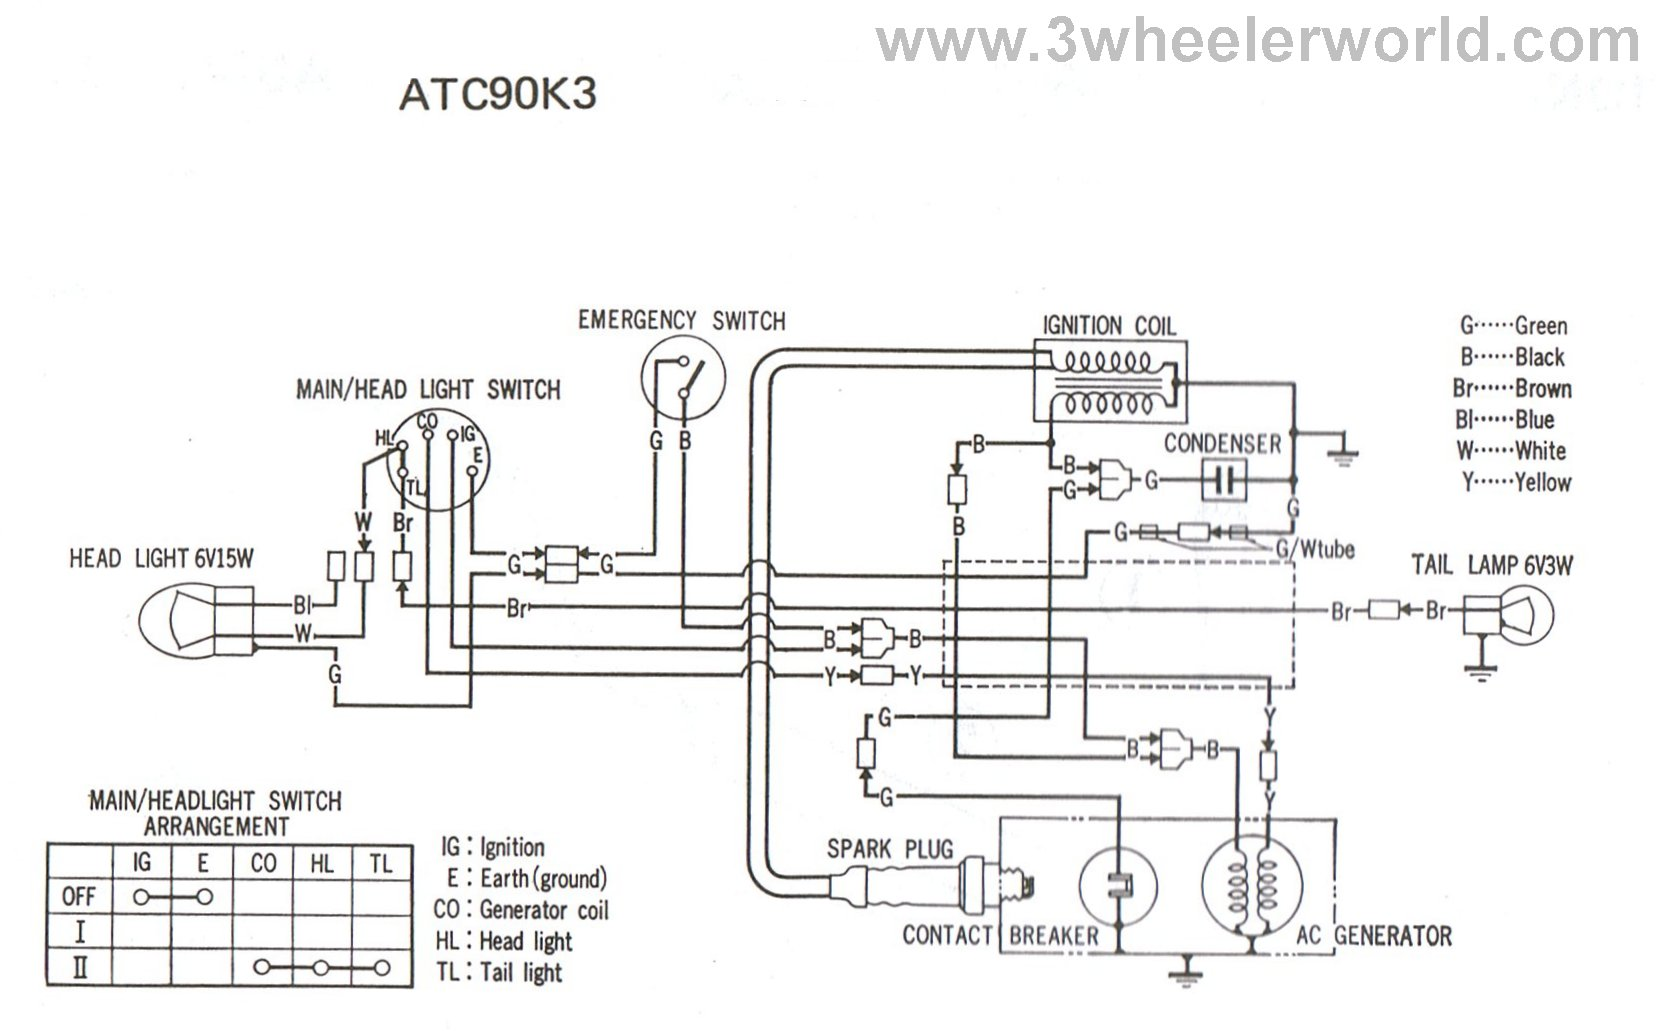 ATC90K3HM 3 wheeler world tech help honda wiring diagrams honda 90 atc wiring at crackthecode.co